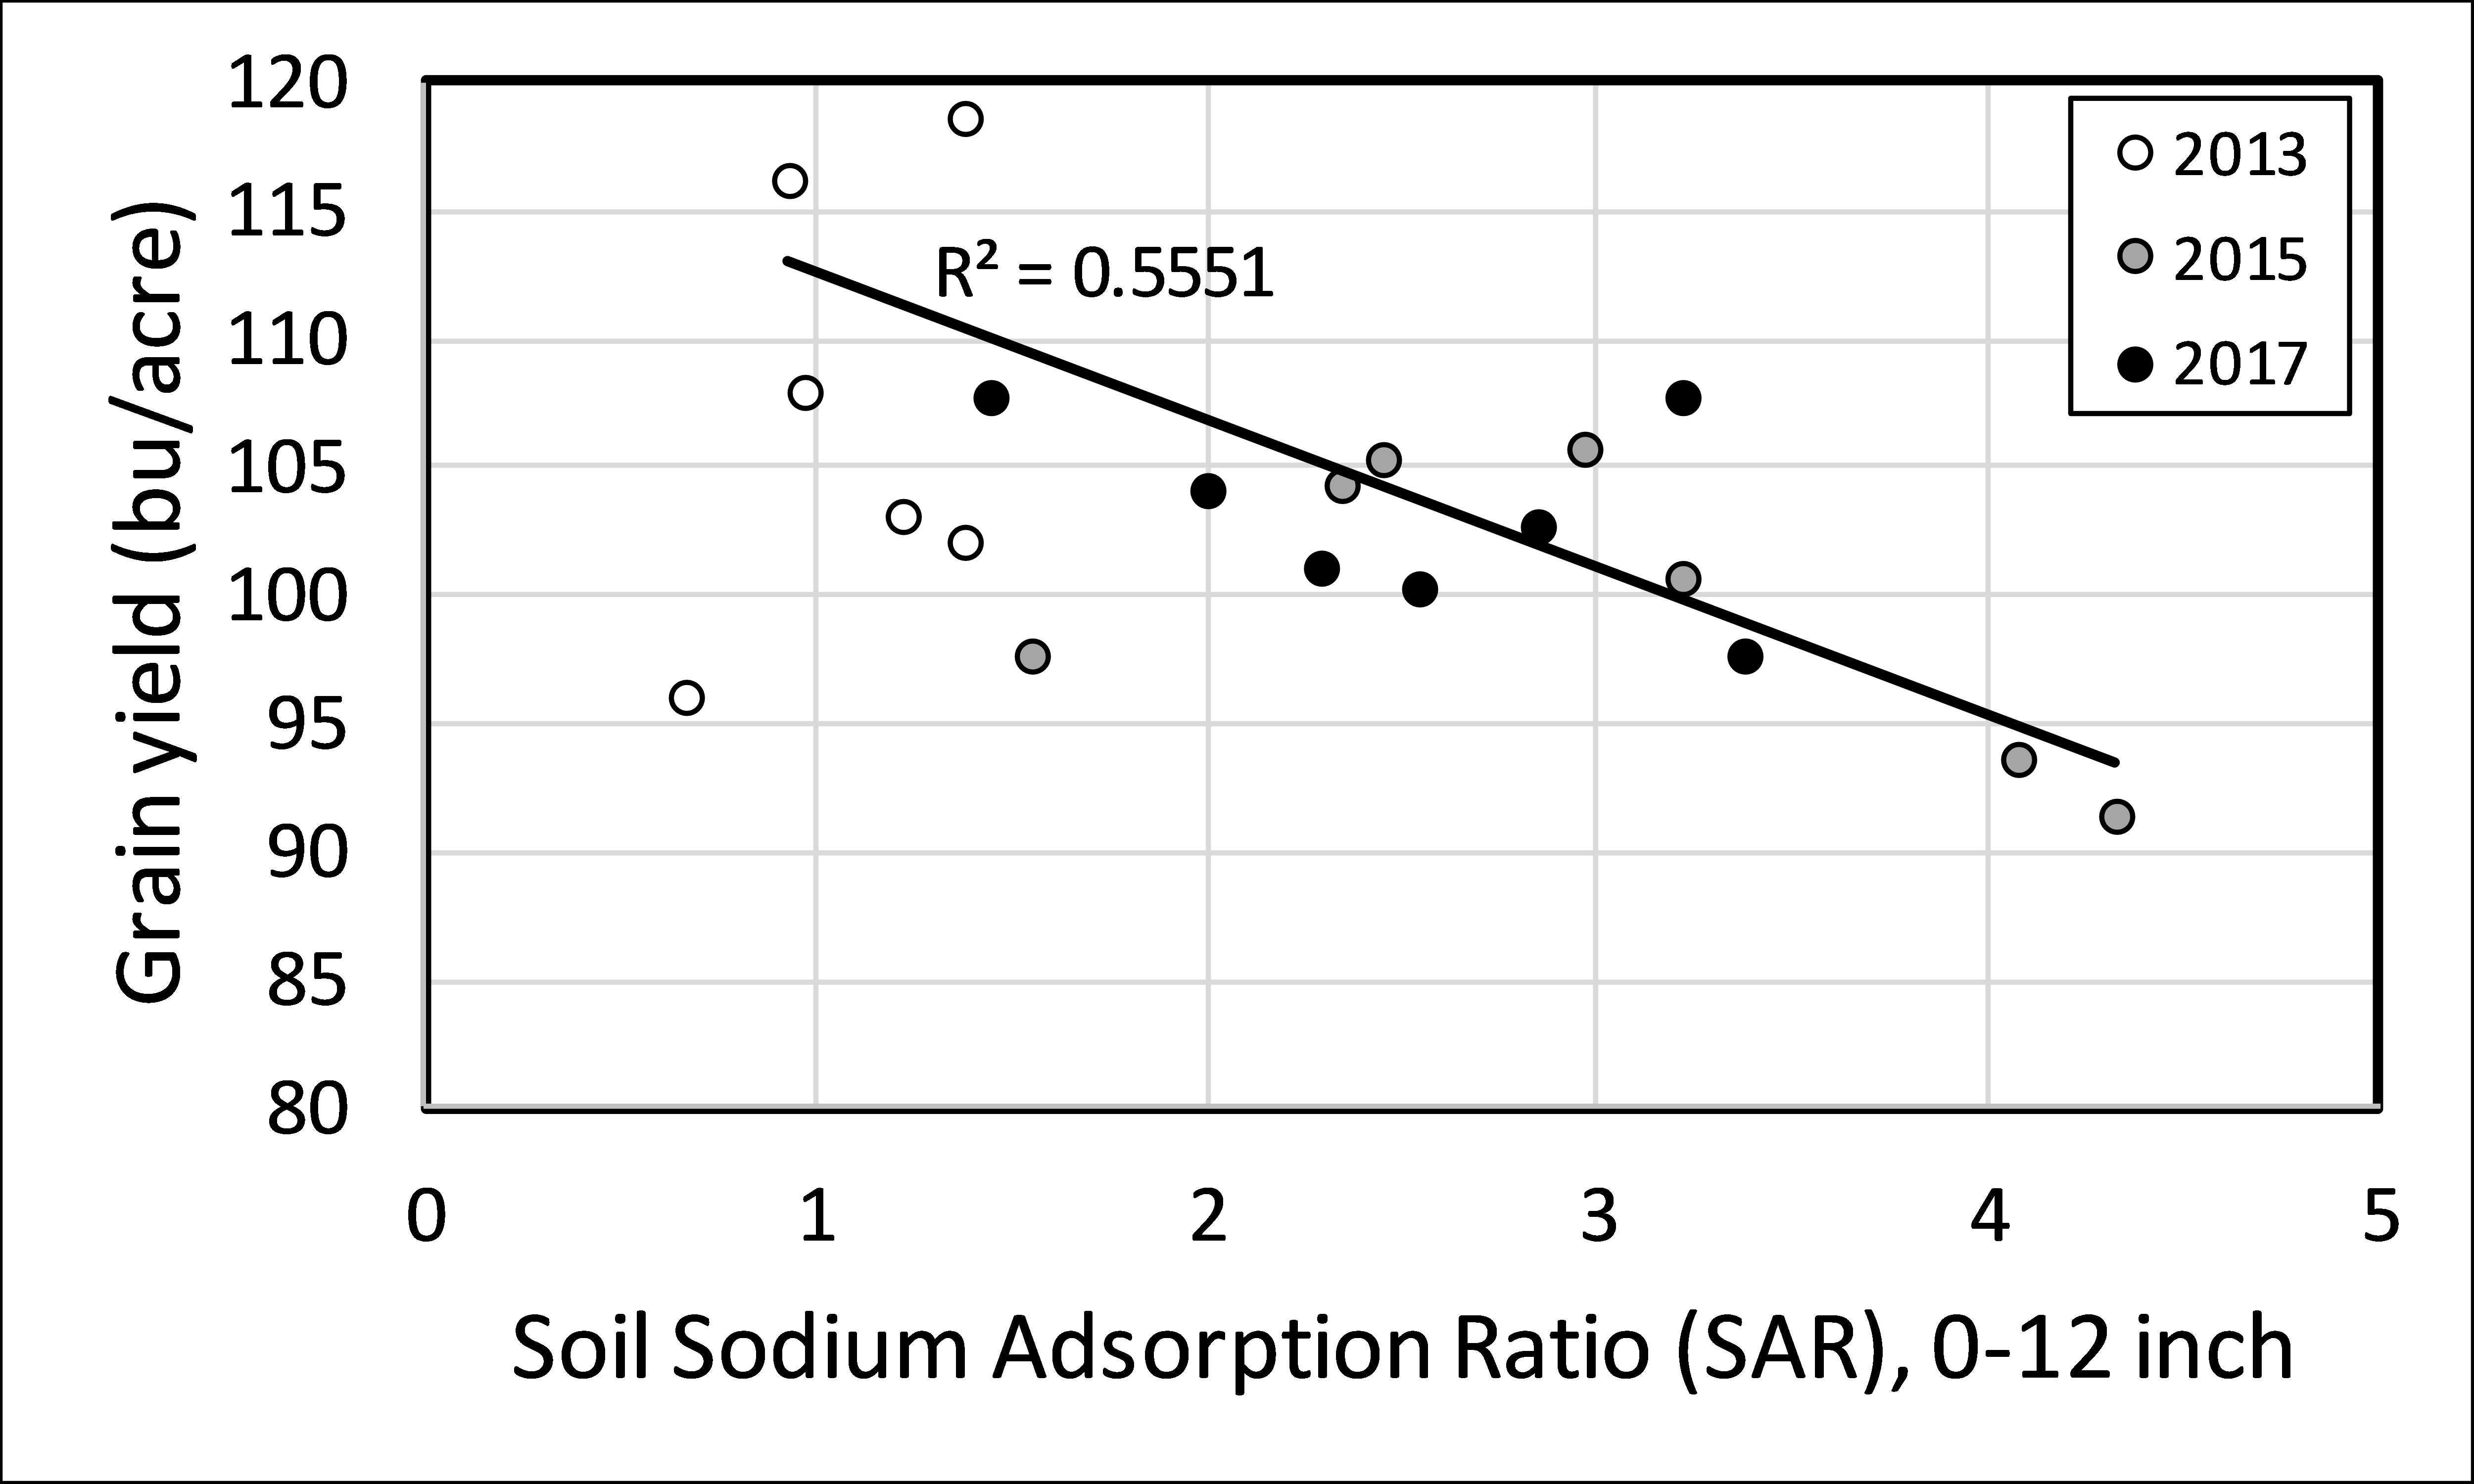 Figure 13. Grain yield response to sodium adsorption ratio (SAR) on manured soils. Fertilizer treatments are not included in this graph, as other parameters beyond SAR appeared to be influencing yield.